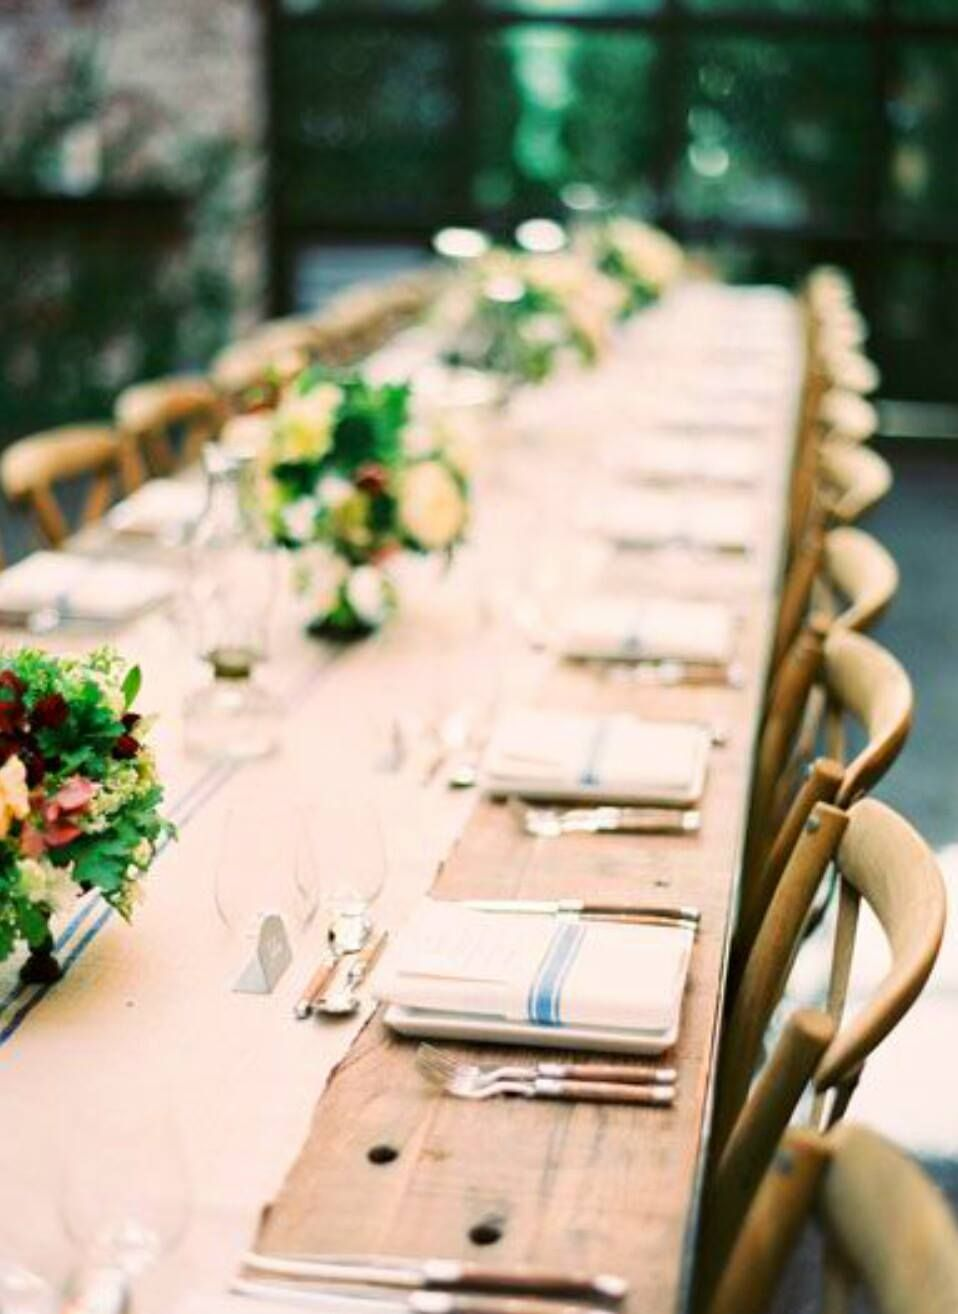 Natural and Neutral Wedding Table | Jen Huang Photography | Fresh Green and Neutral Spring Wedding Ideas with a Hint of Gold and Wrapping Vines